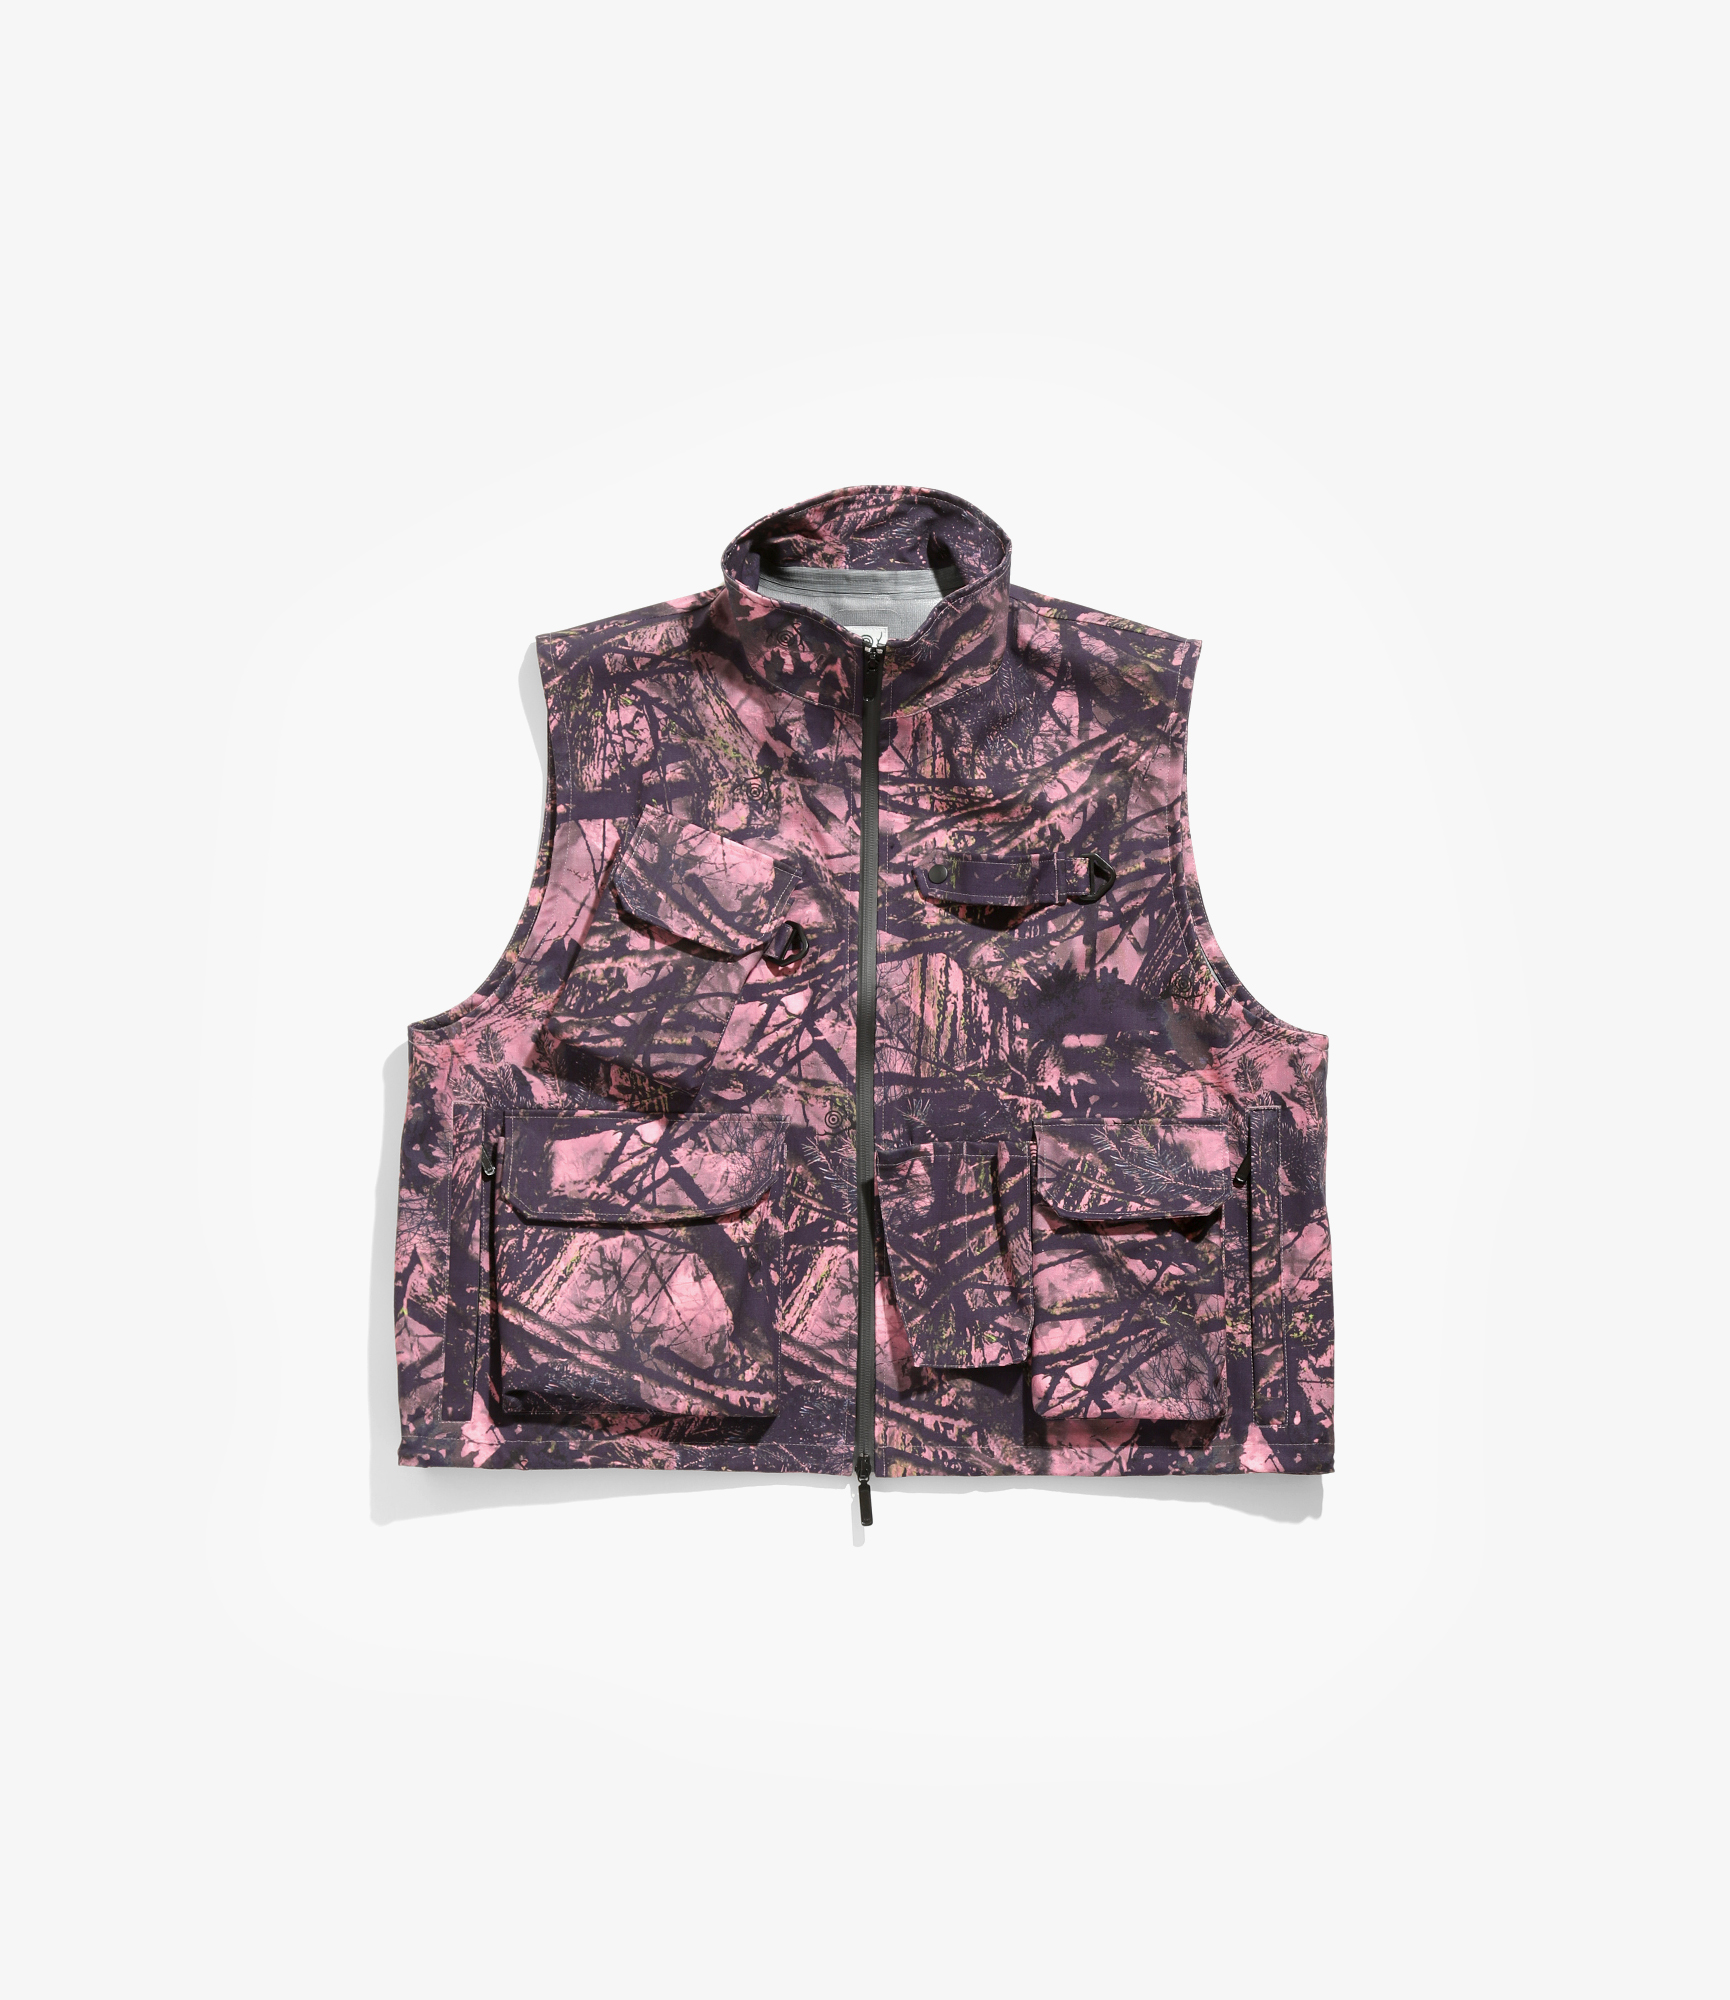 〈SOUTH2 WEST8〉3 LAYER S2W8 CAMO SERIES in STORE